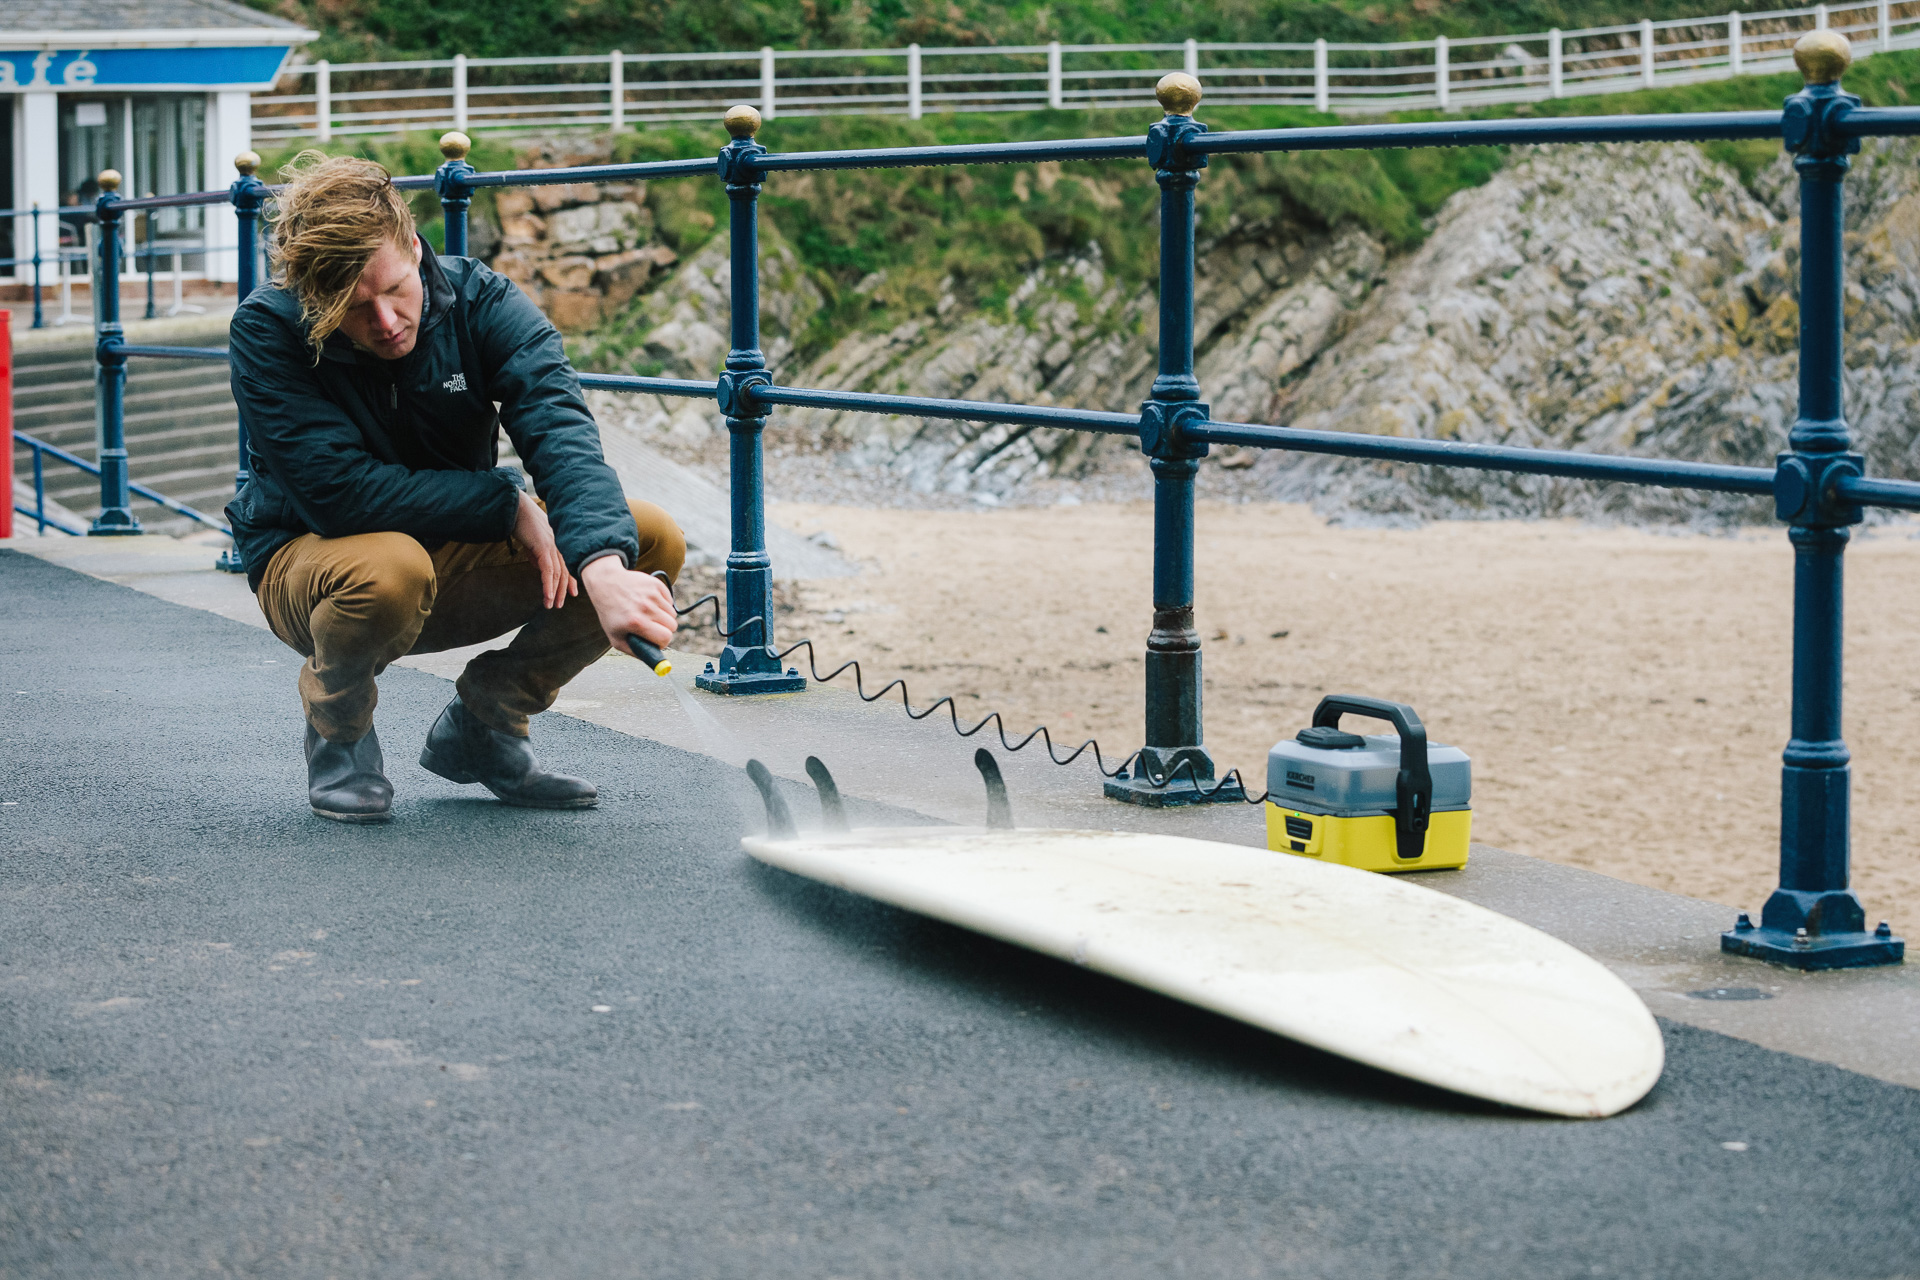 karcher-oc3-portable-cleaner-cleaning-surf-board-and-wetsuit-68-karcher-road-cycling-cj177578